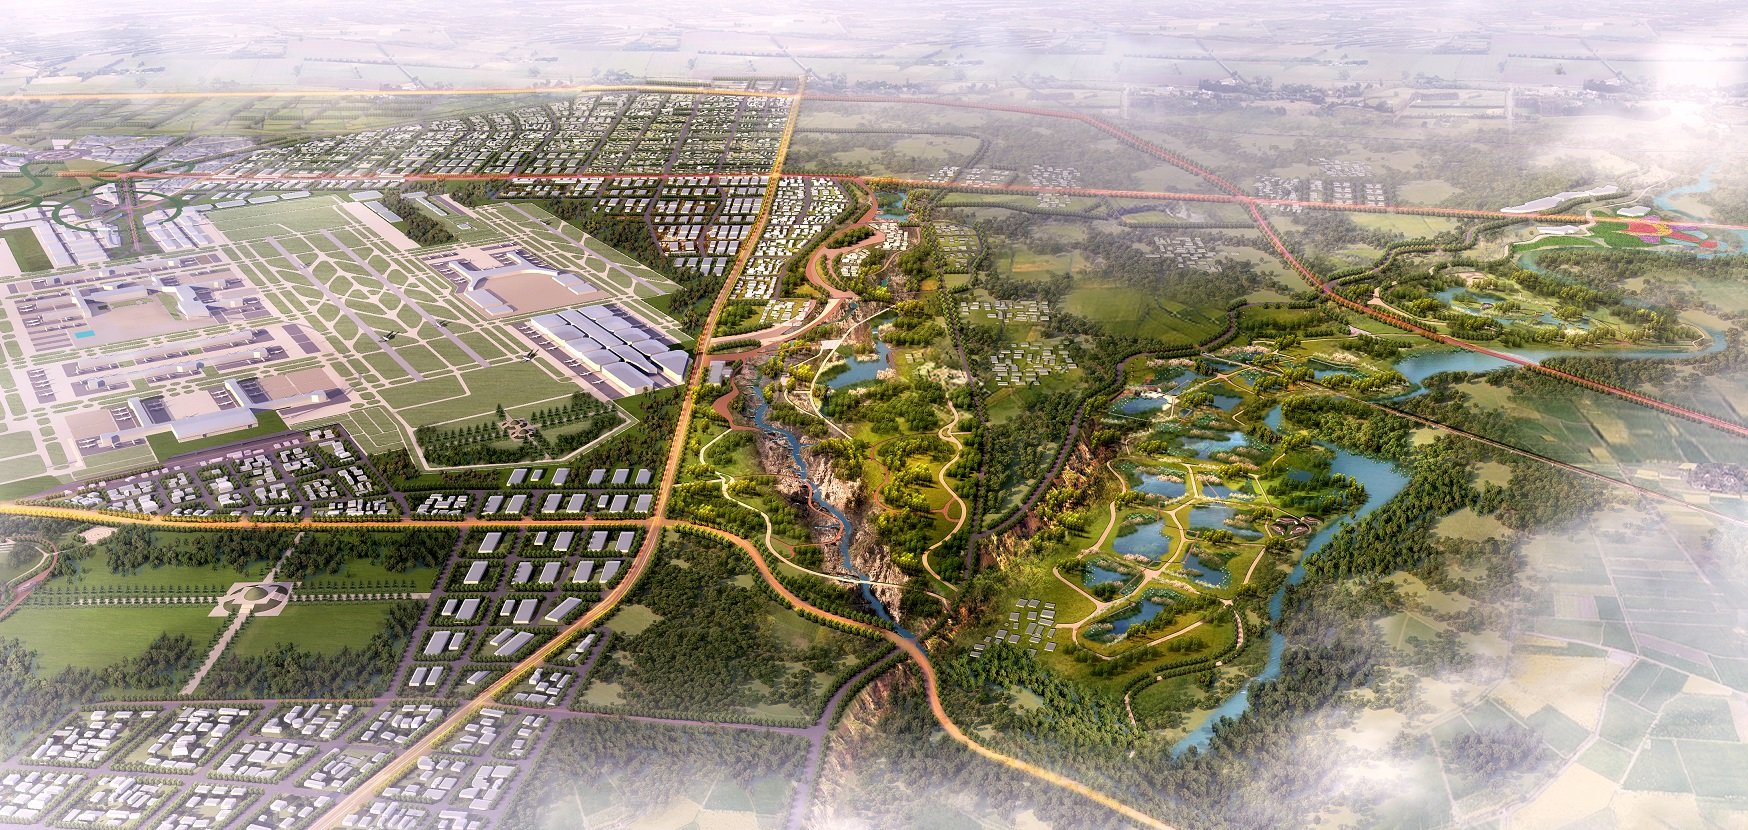 Eco-Landscape Planning of Xixian Airport City, Xi'an